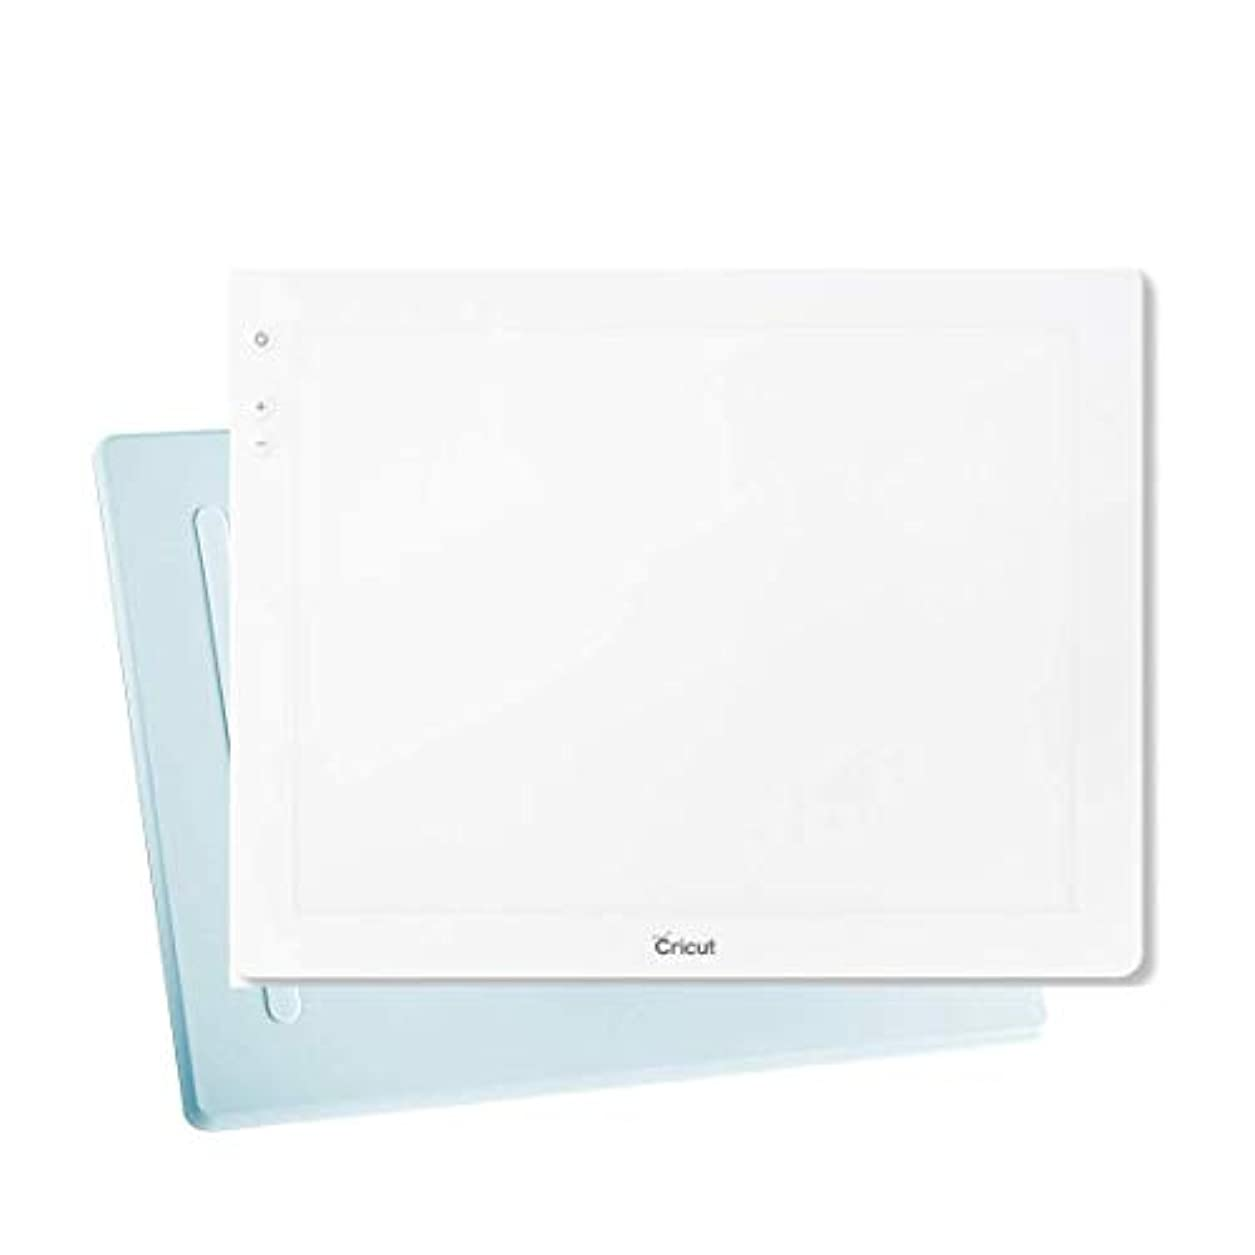 Cricut Bright Pad - Blue wqx97853802